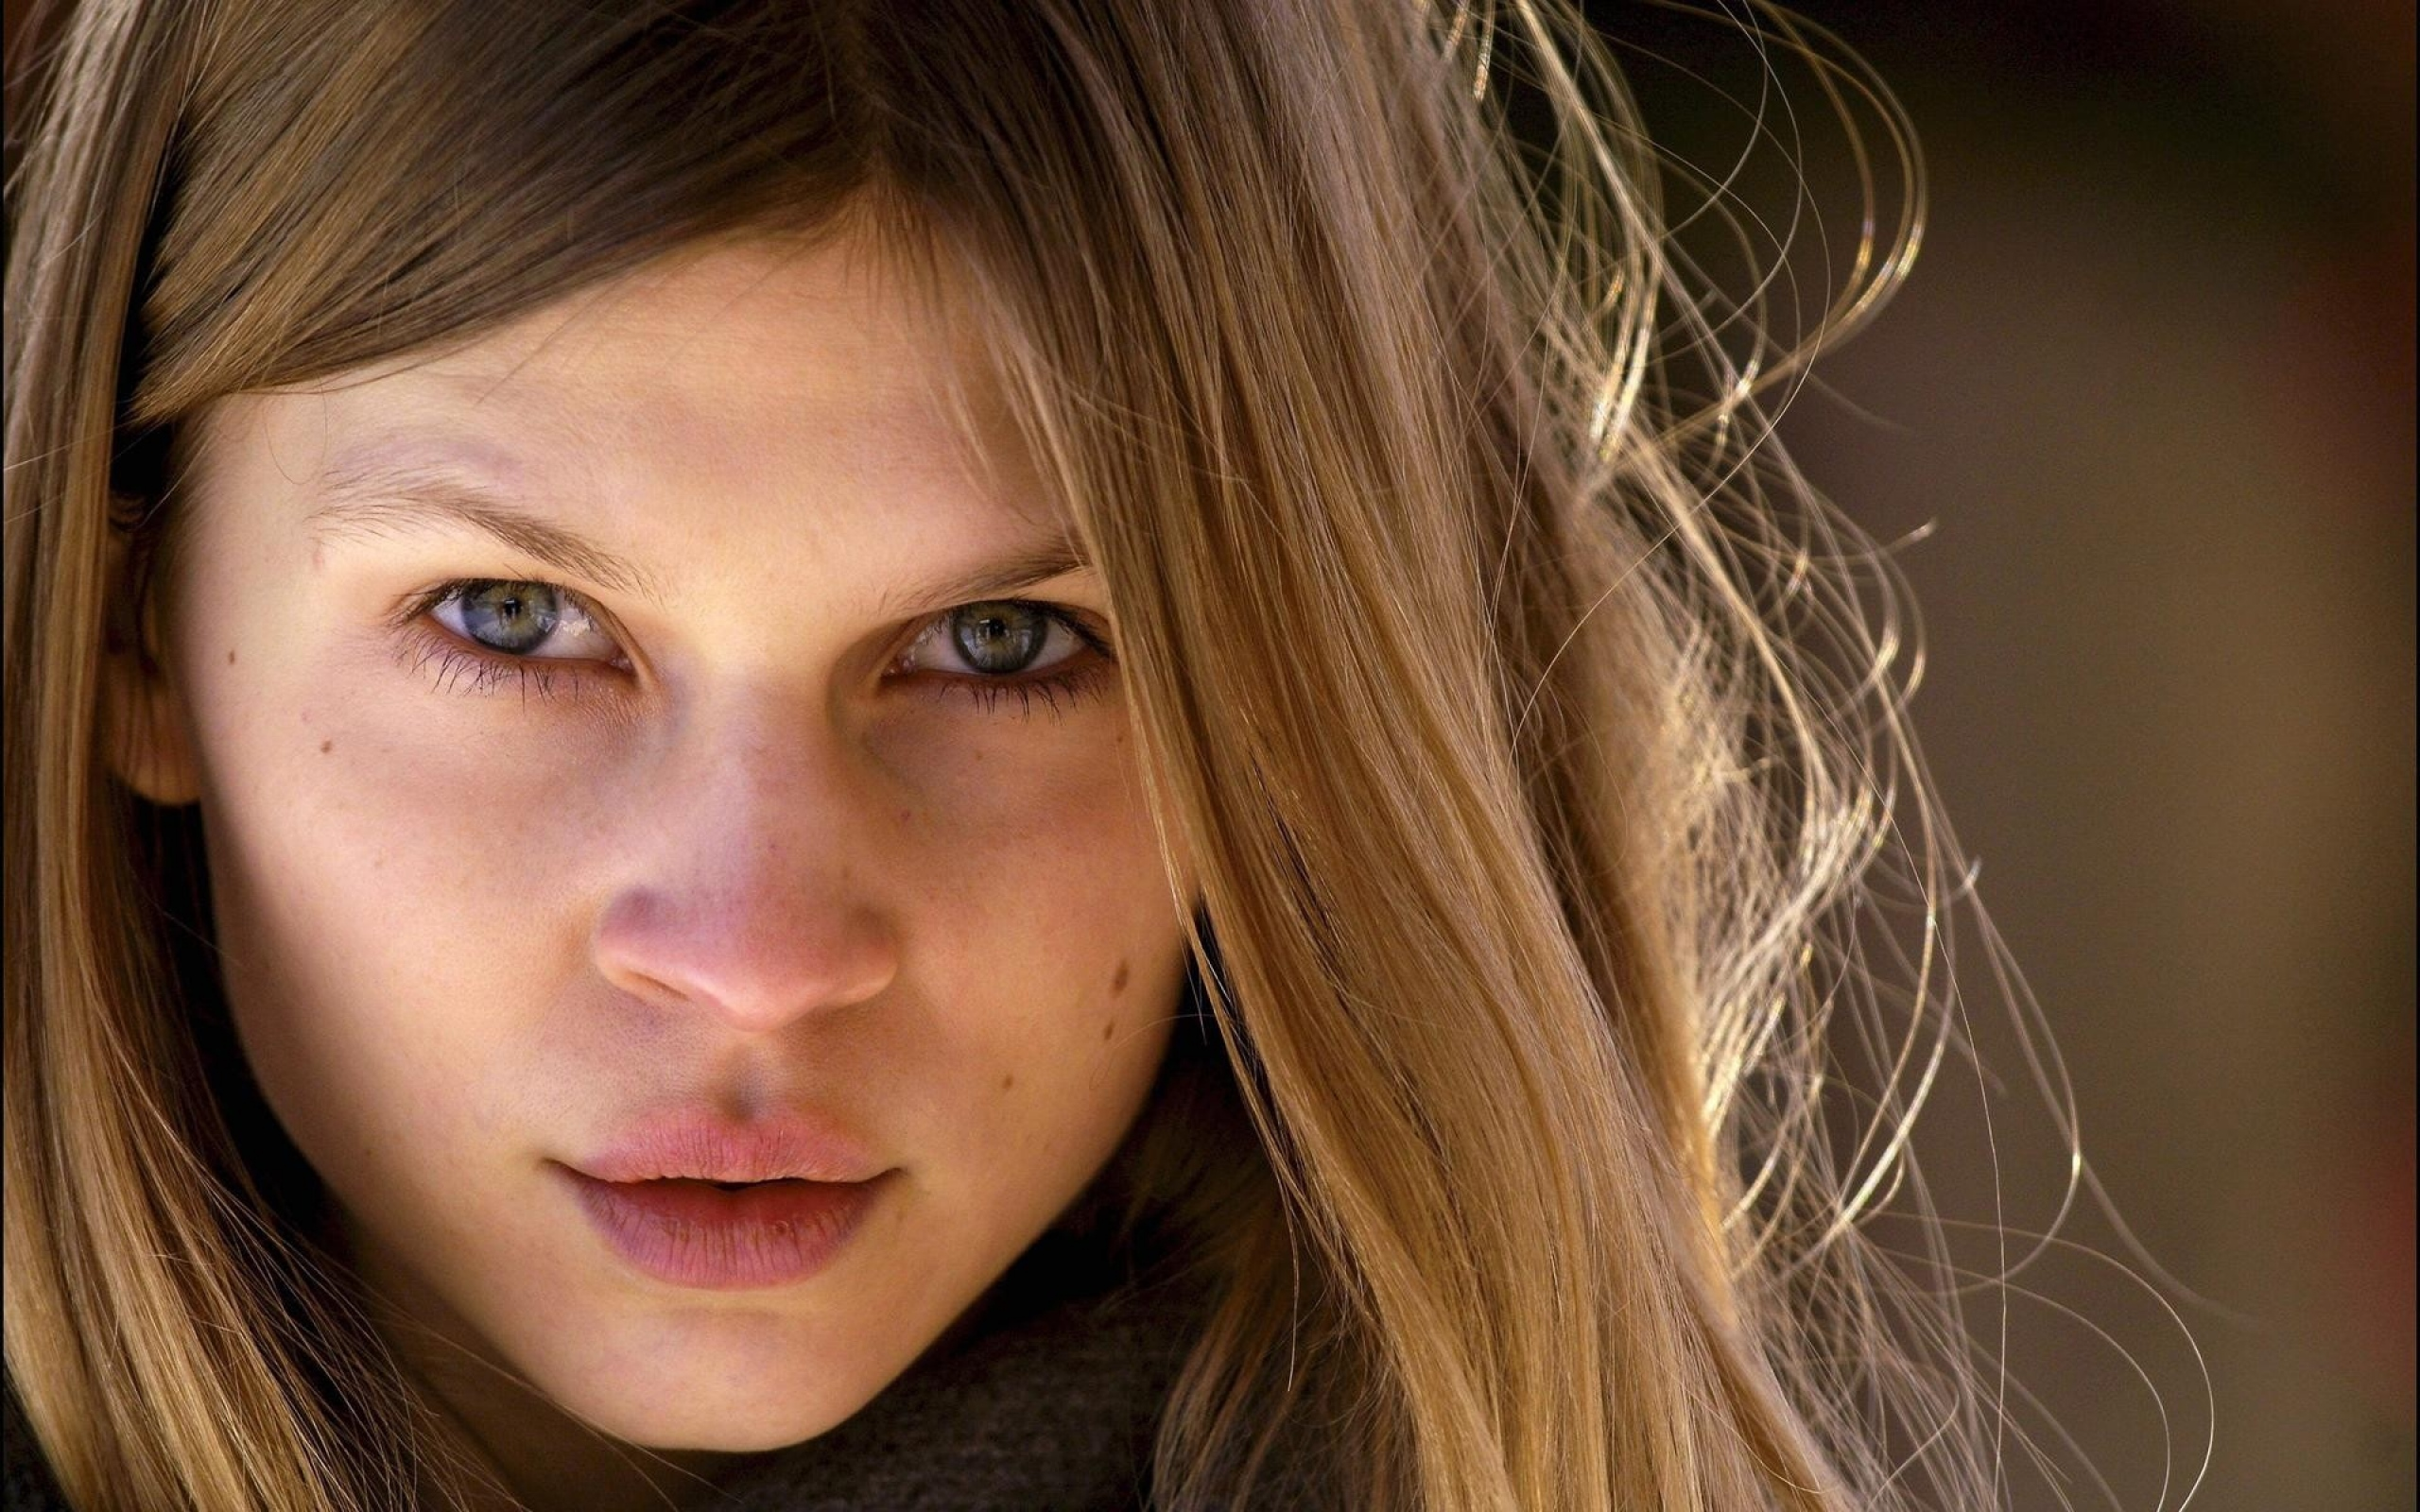 2560x1600 - Clemence Poesy Wallpapers 16